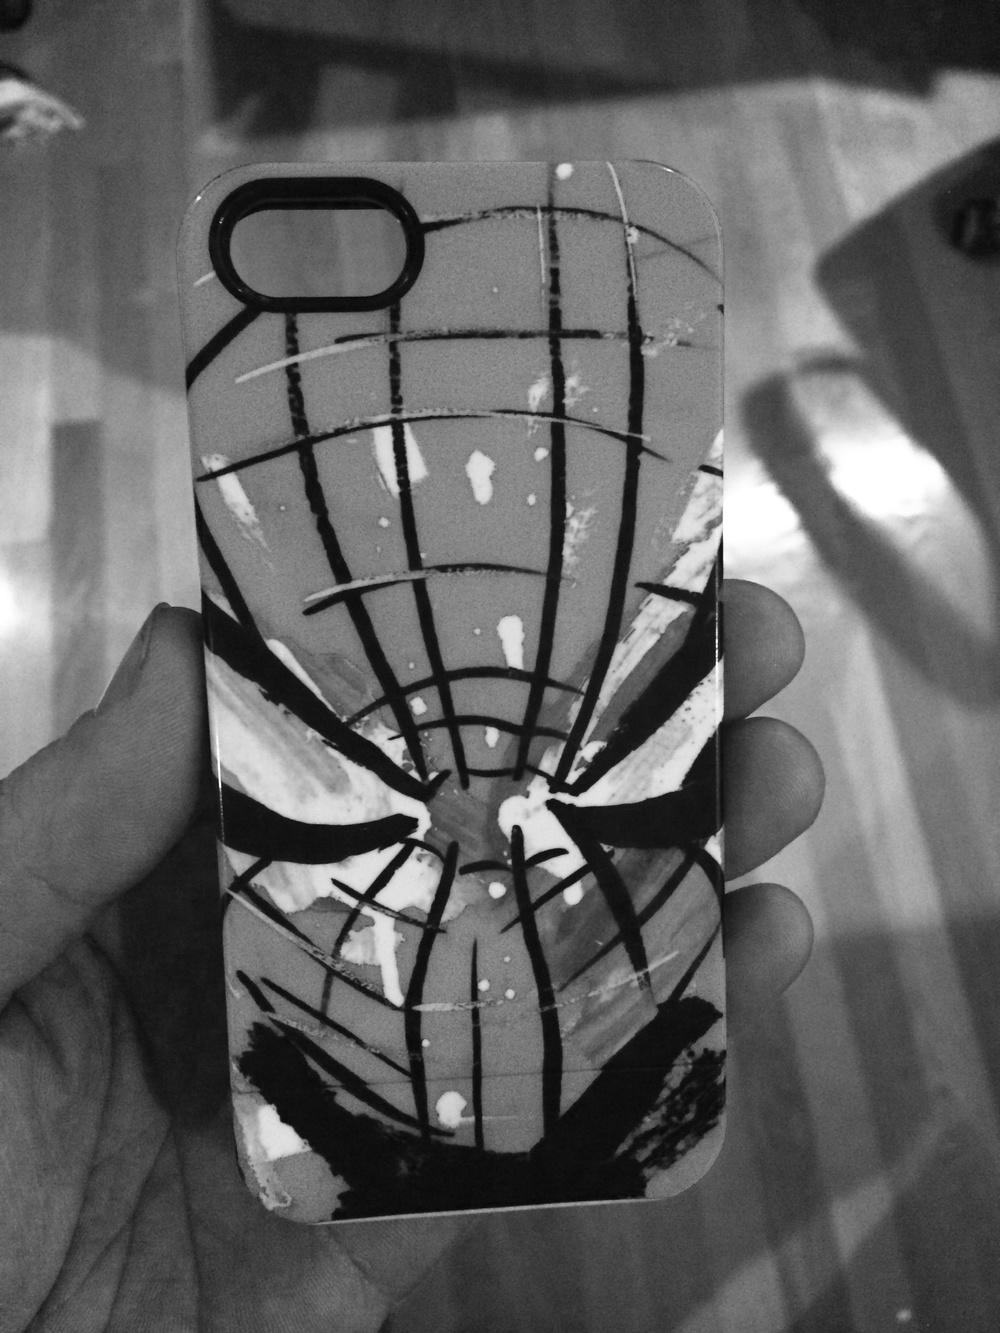 I'll have prints available of this spidey head and phone covers can be ordered through my store.